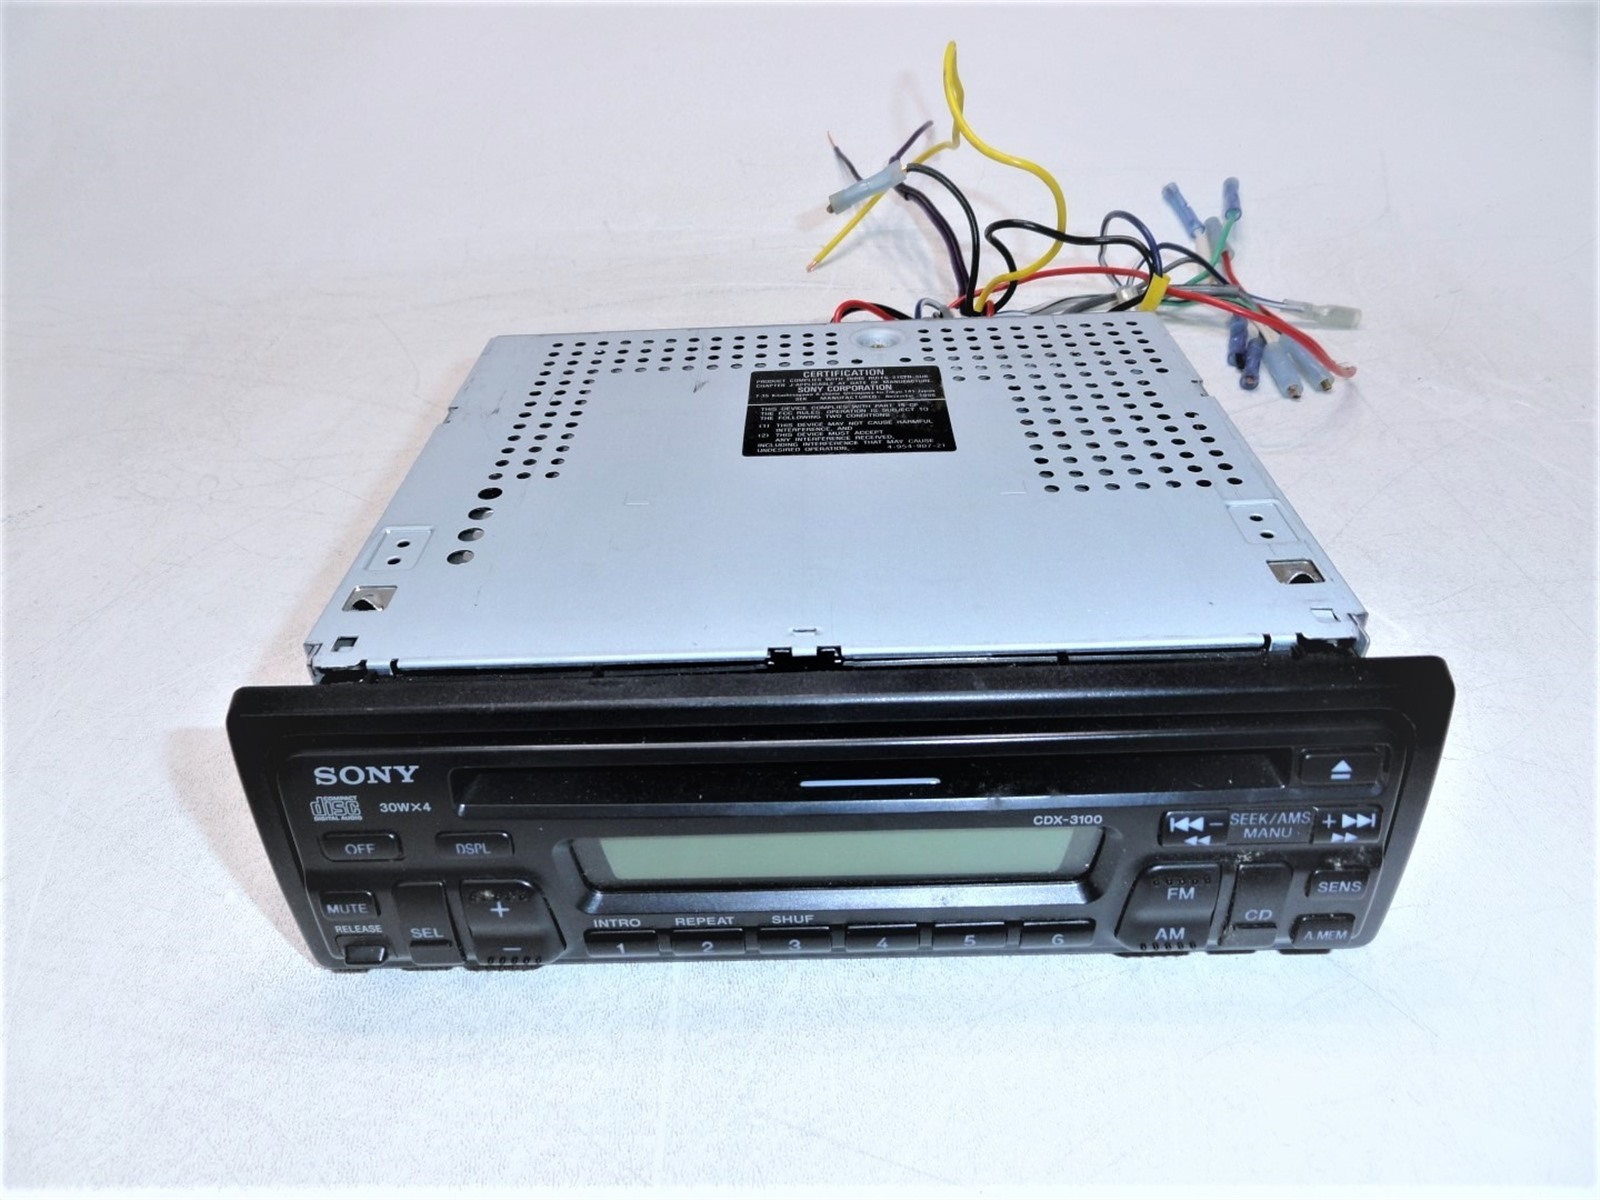 hight resolution of sony cdx 3100 fm am cd player 30wx4 car stereo w wiring harness limit test as is for parts or not working